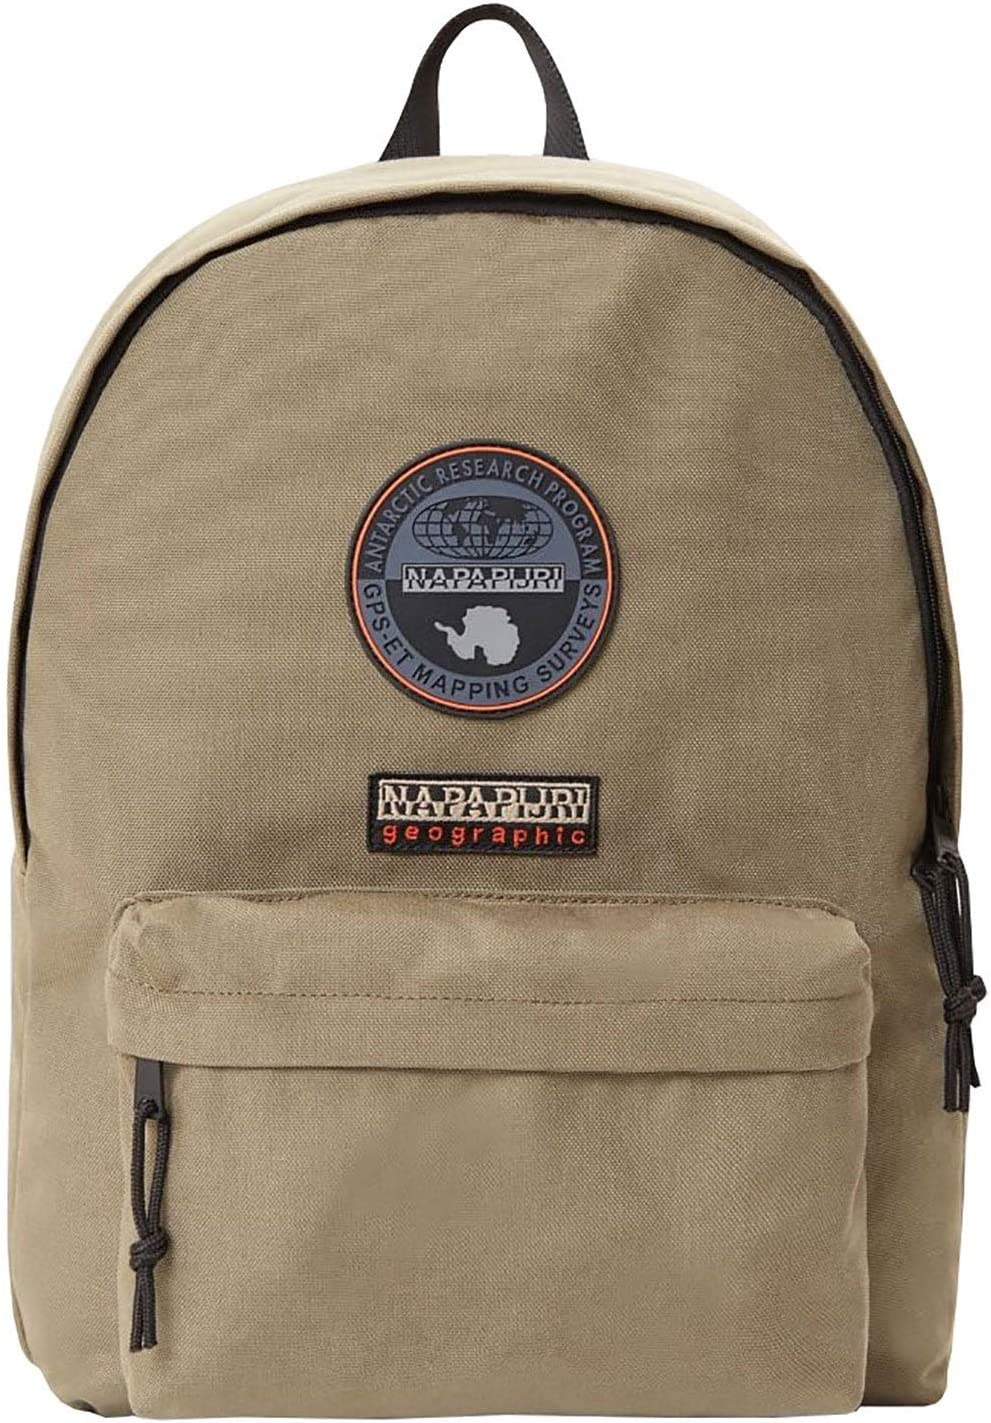 Backpack NAPAPIJRI item 1 VOYAGE quality Limited Special Price assurance N0YGOS